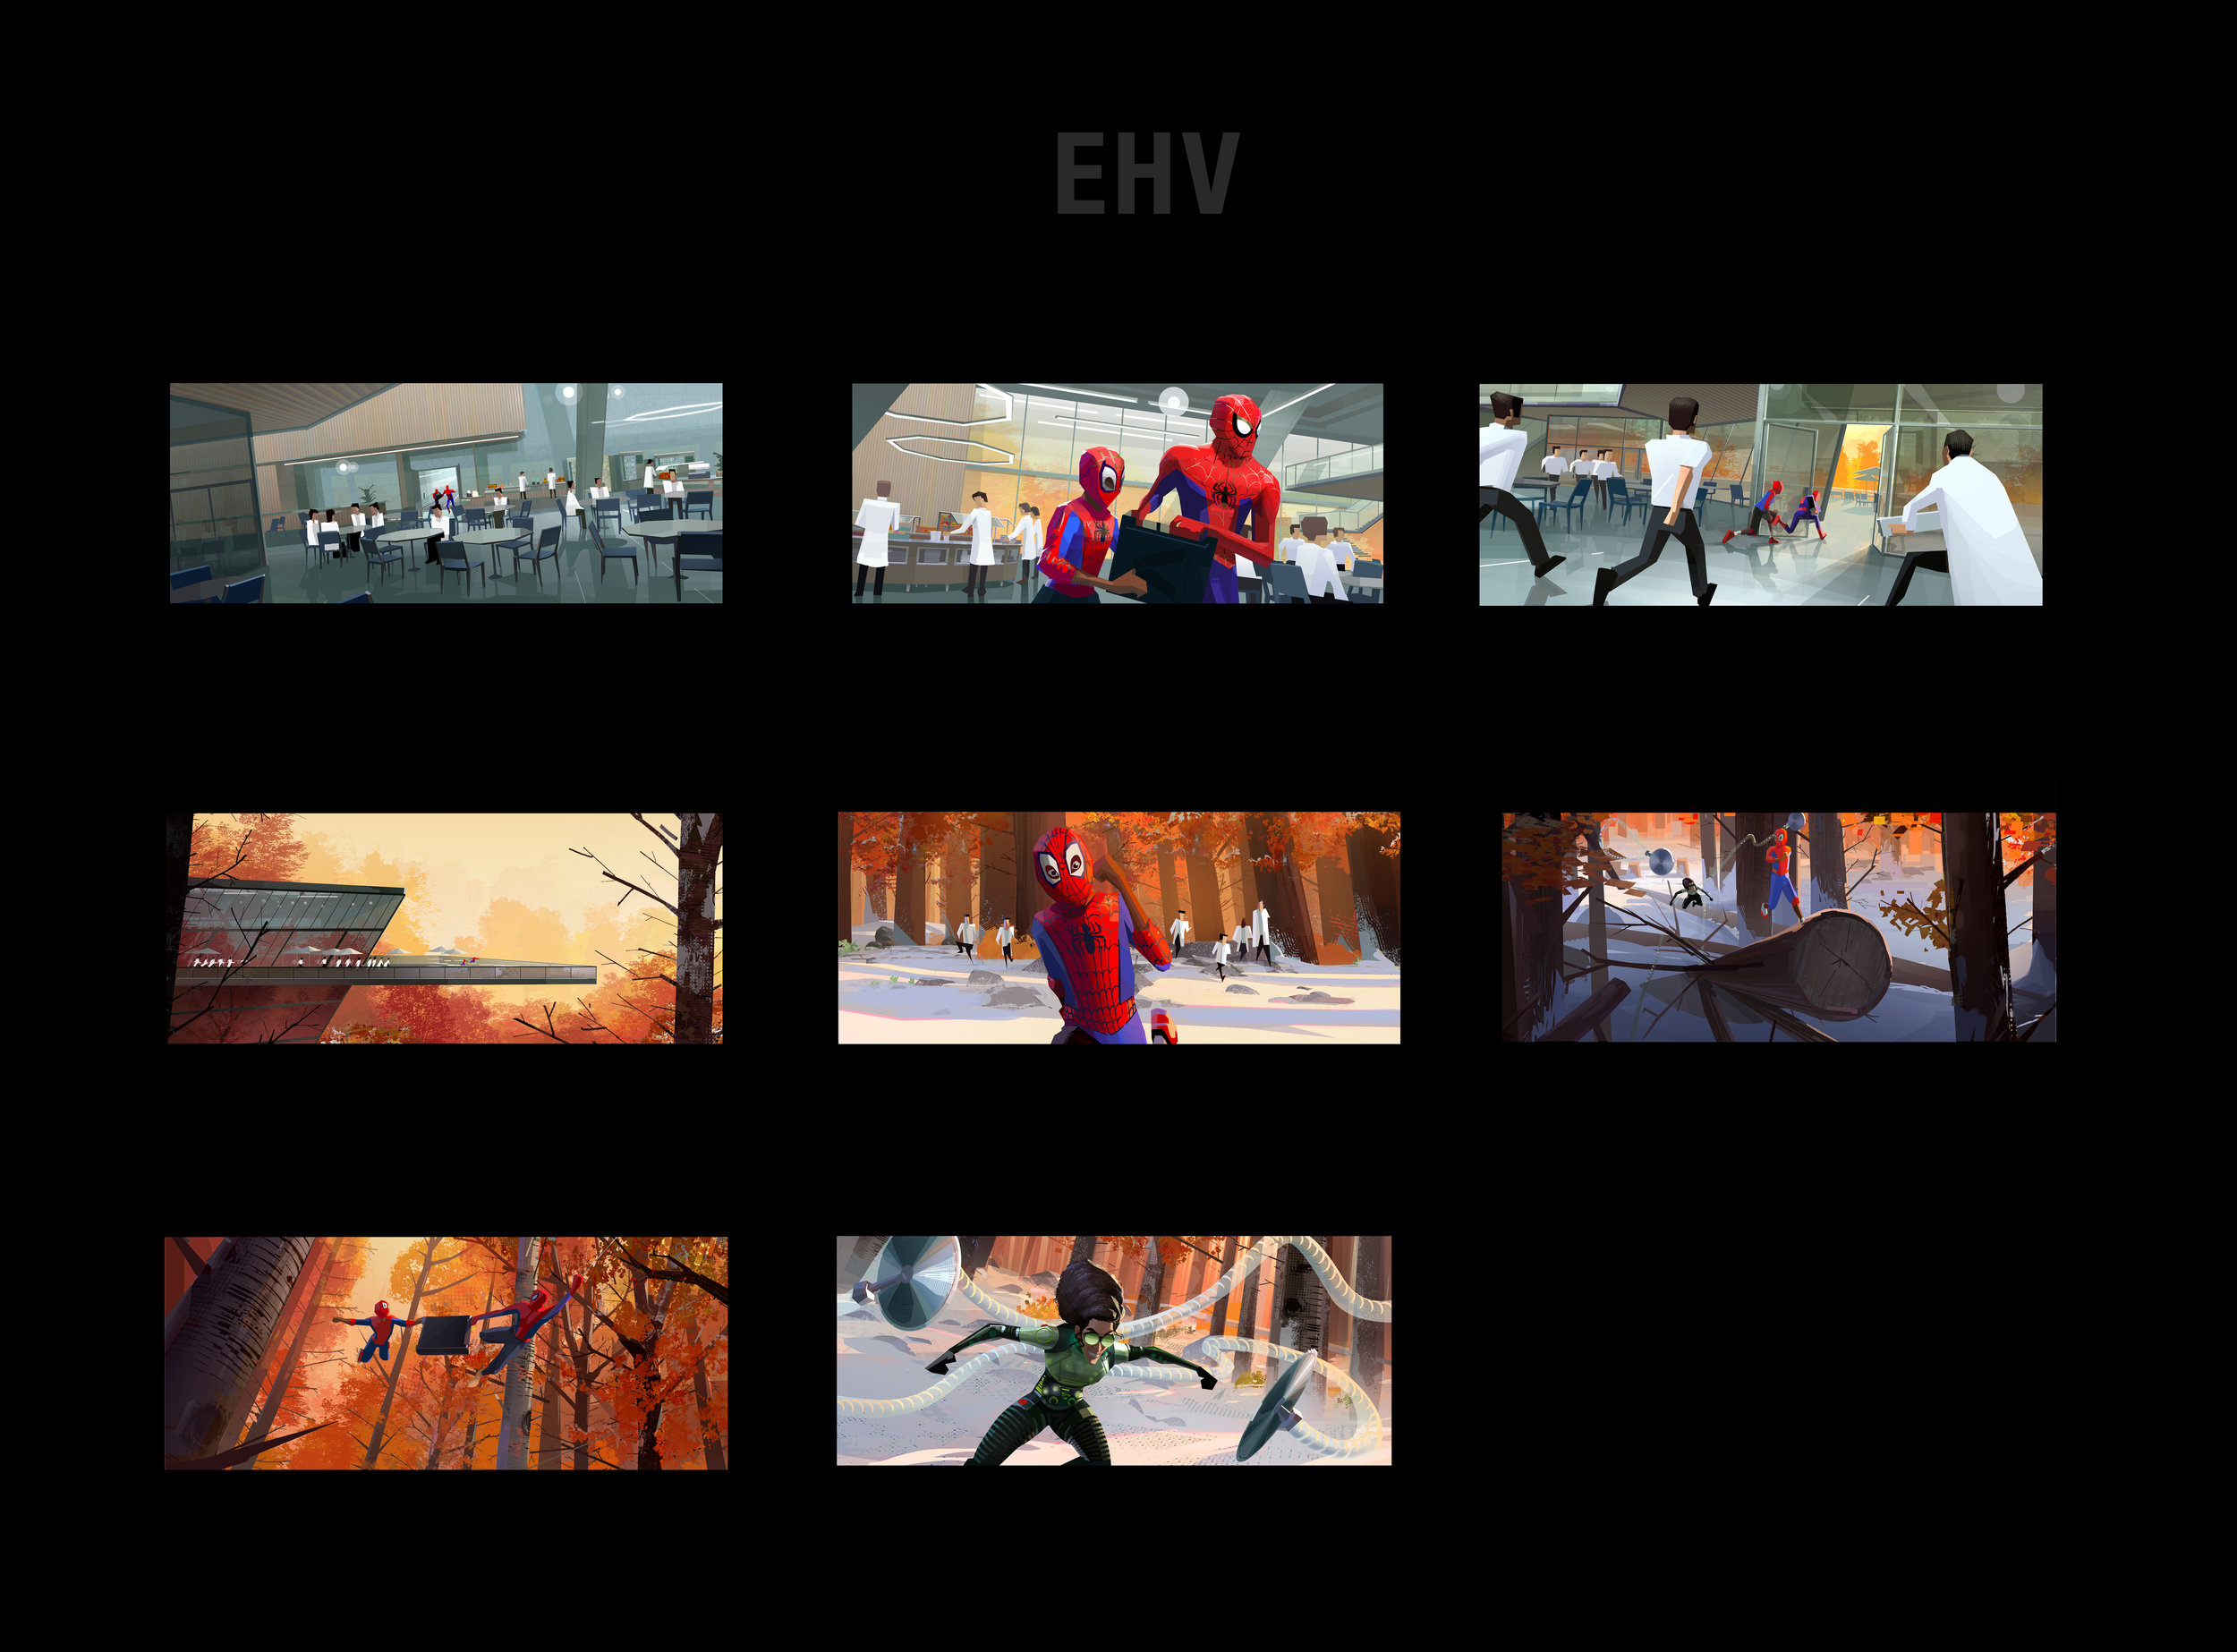 008_EHV new contact sheet.jpg